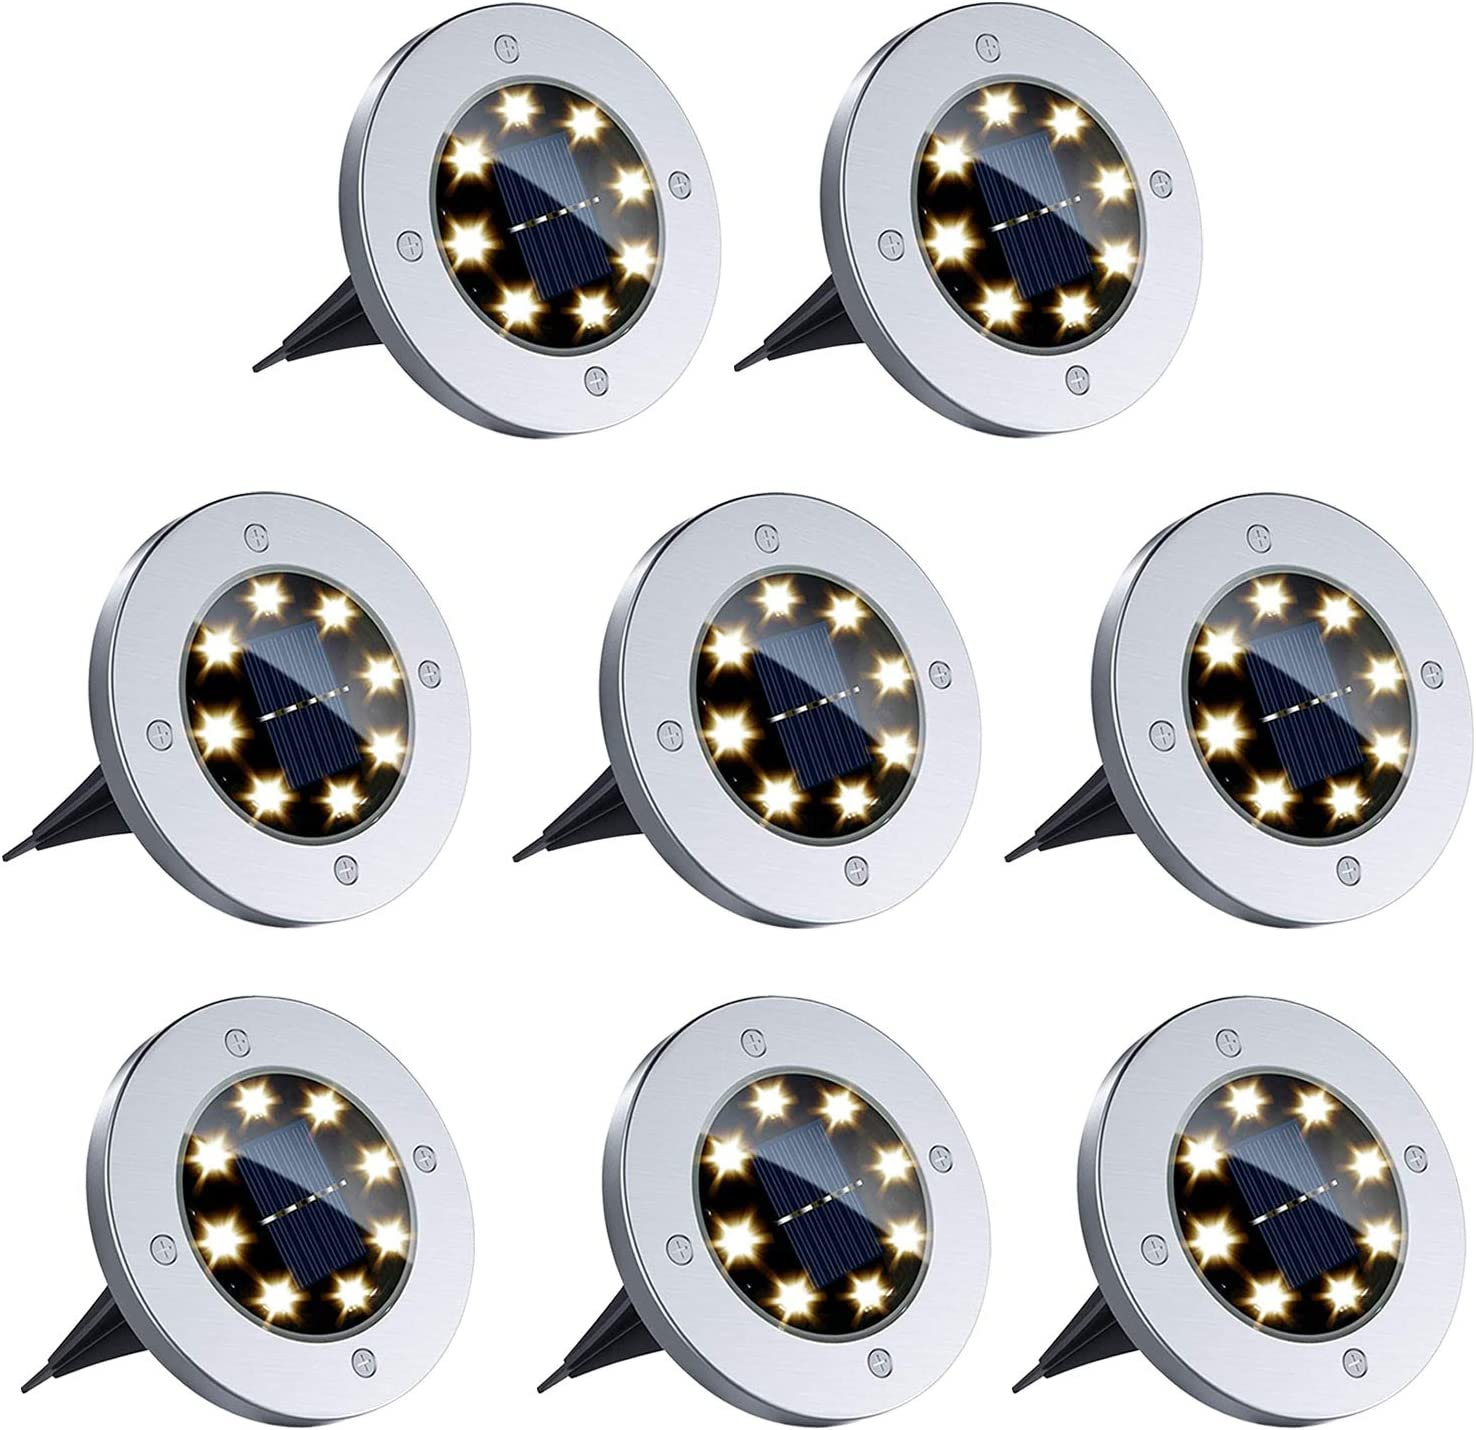 Dersoy 8-LED 8-Pack Garden Pathway Solar Ground Lights  $15.49 Coupon